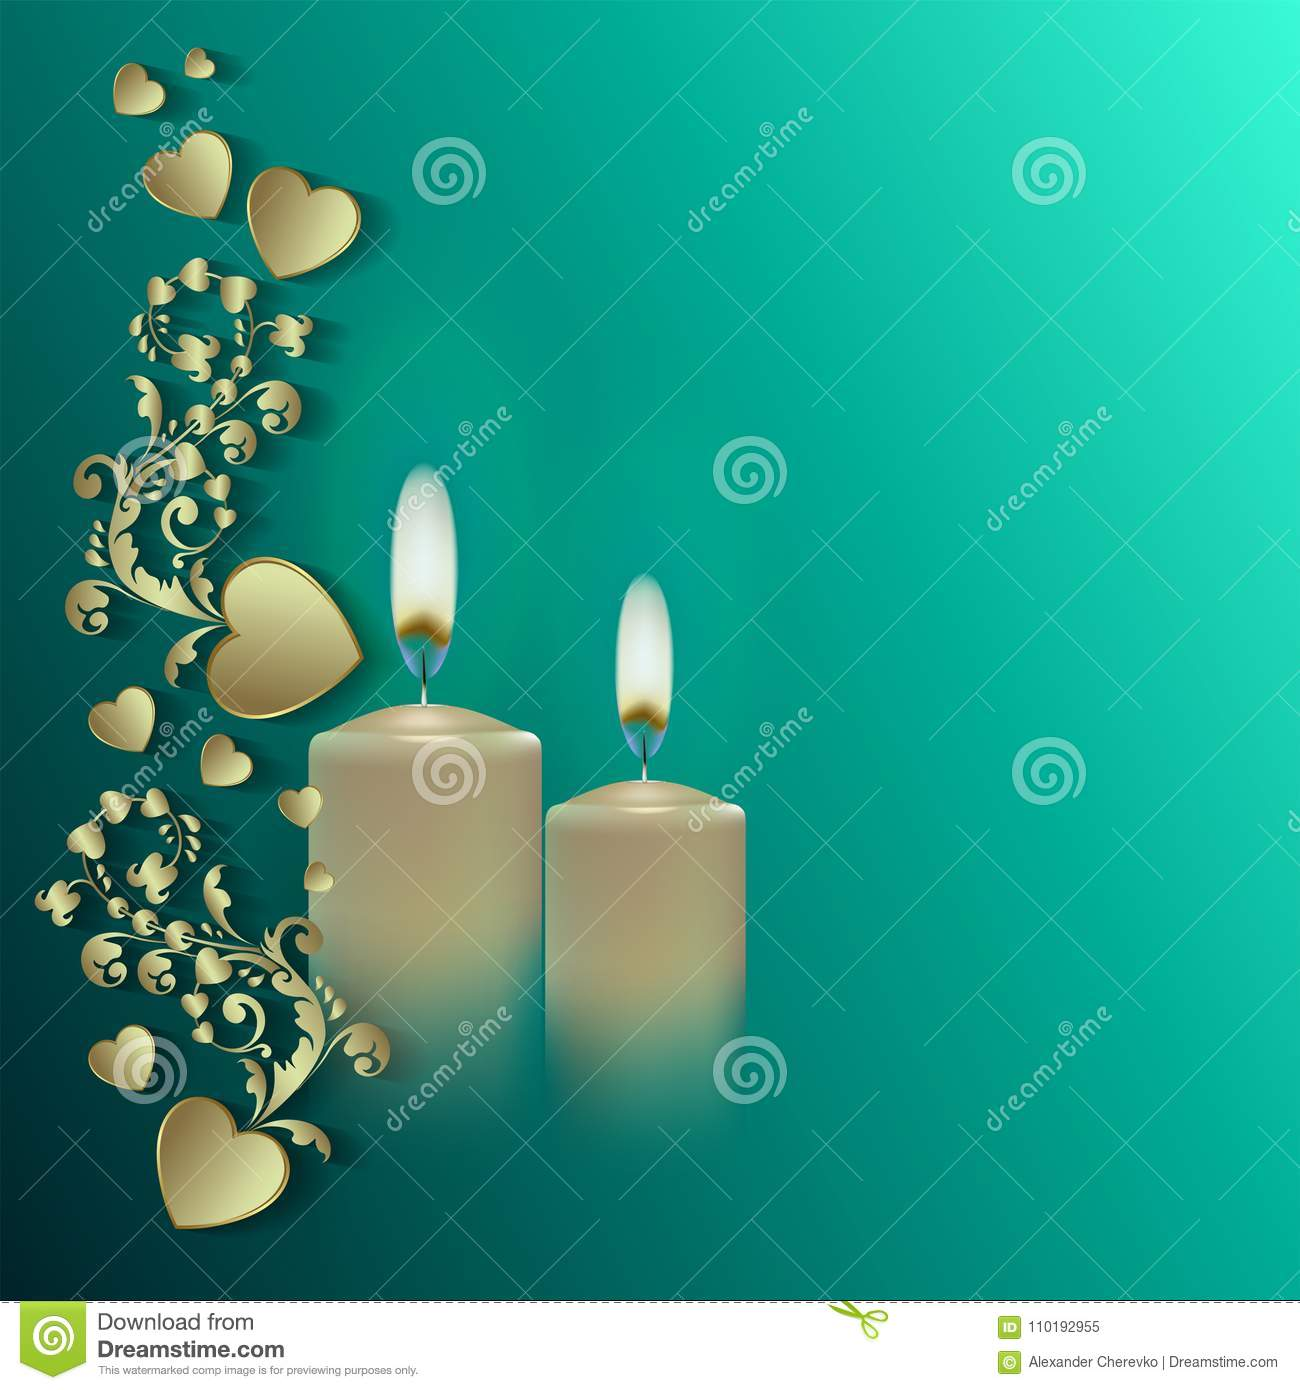 Happy easter, pattern with candles, greeting card